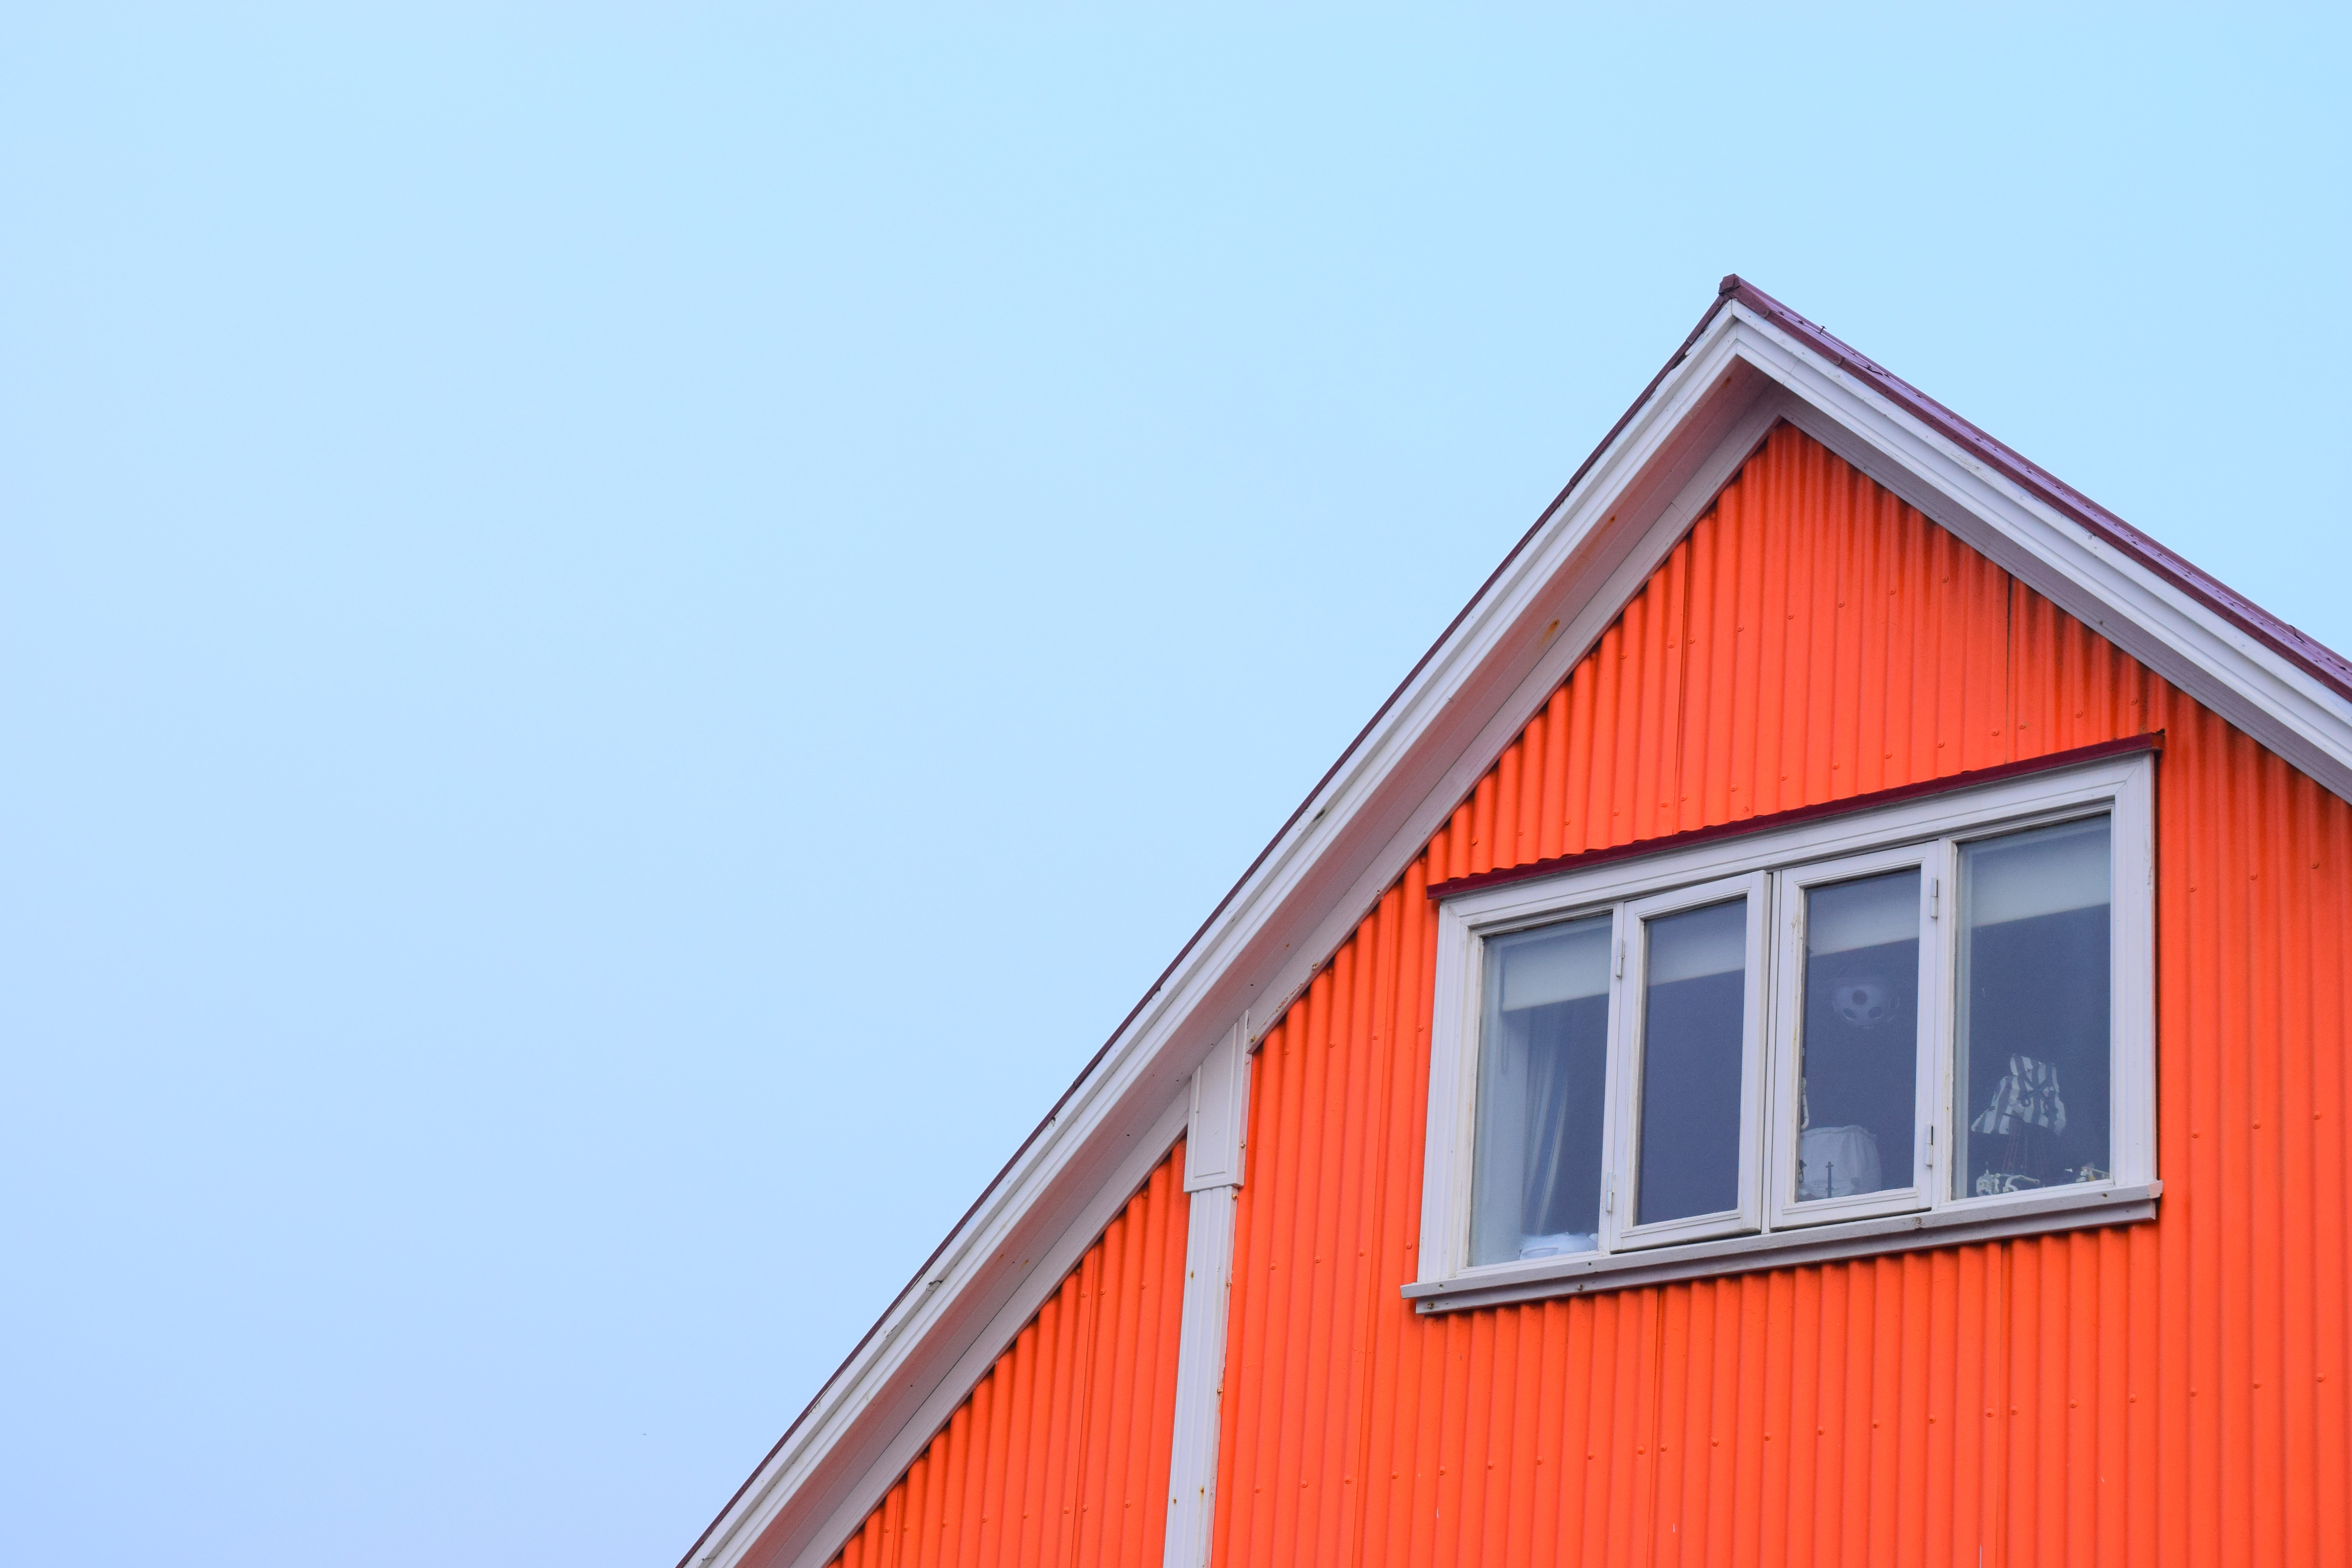 Roof of home with bright orange siding against blue sky.